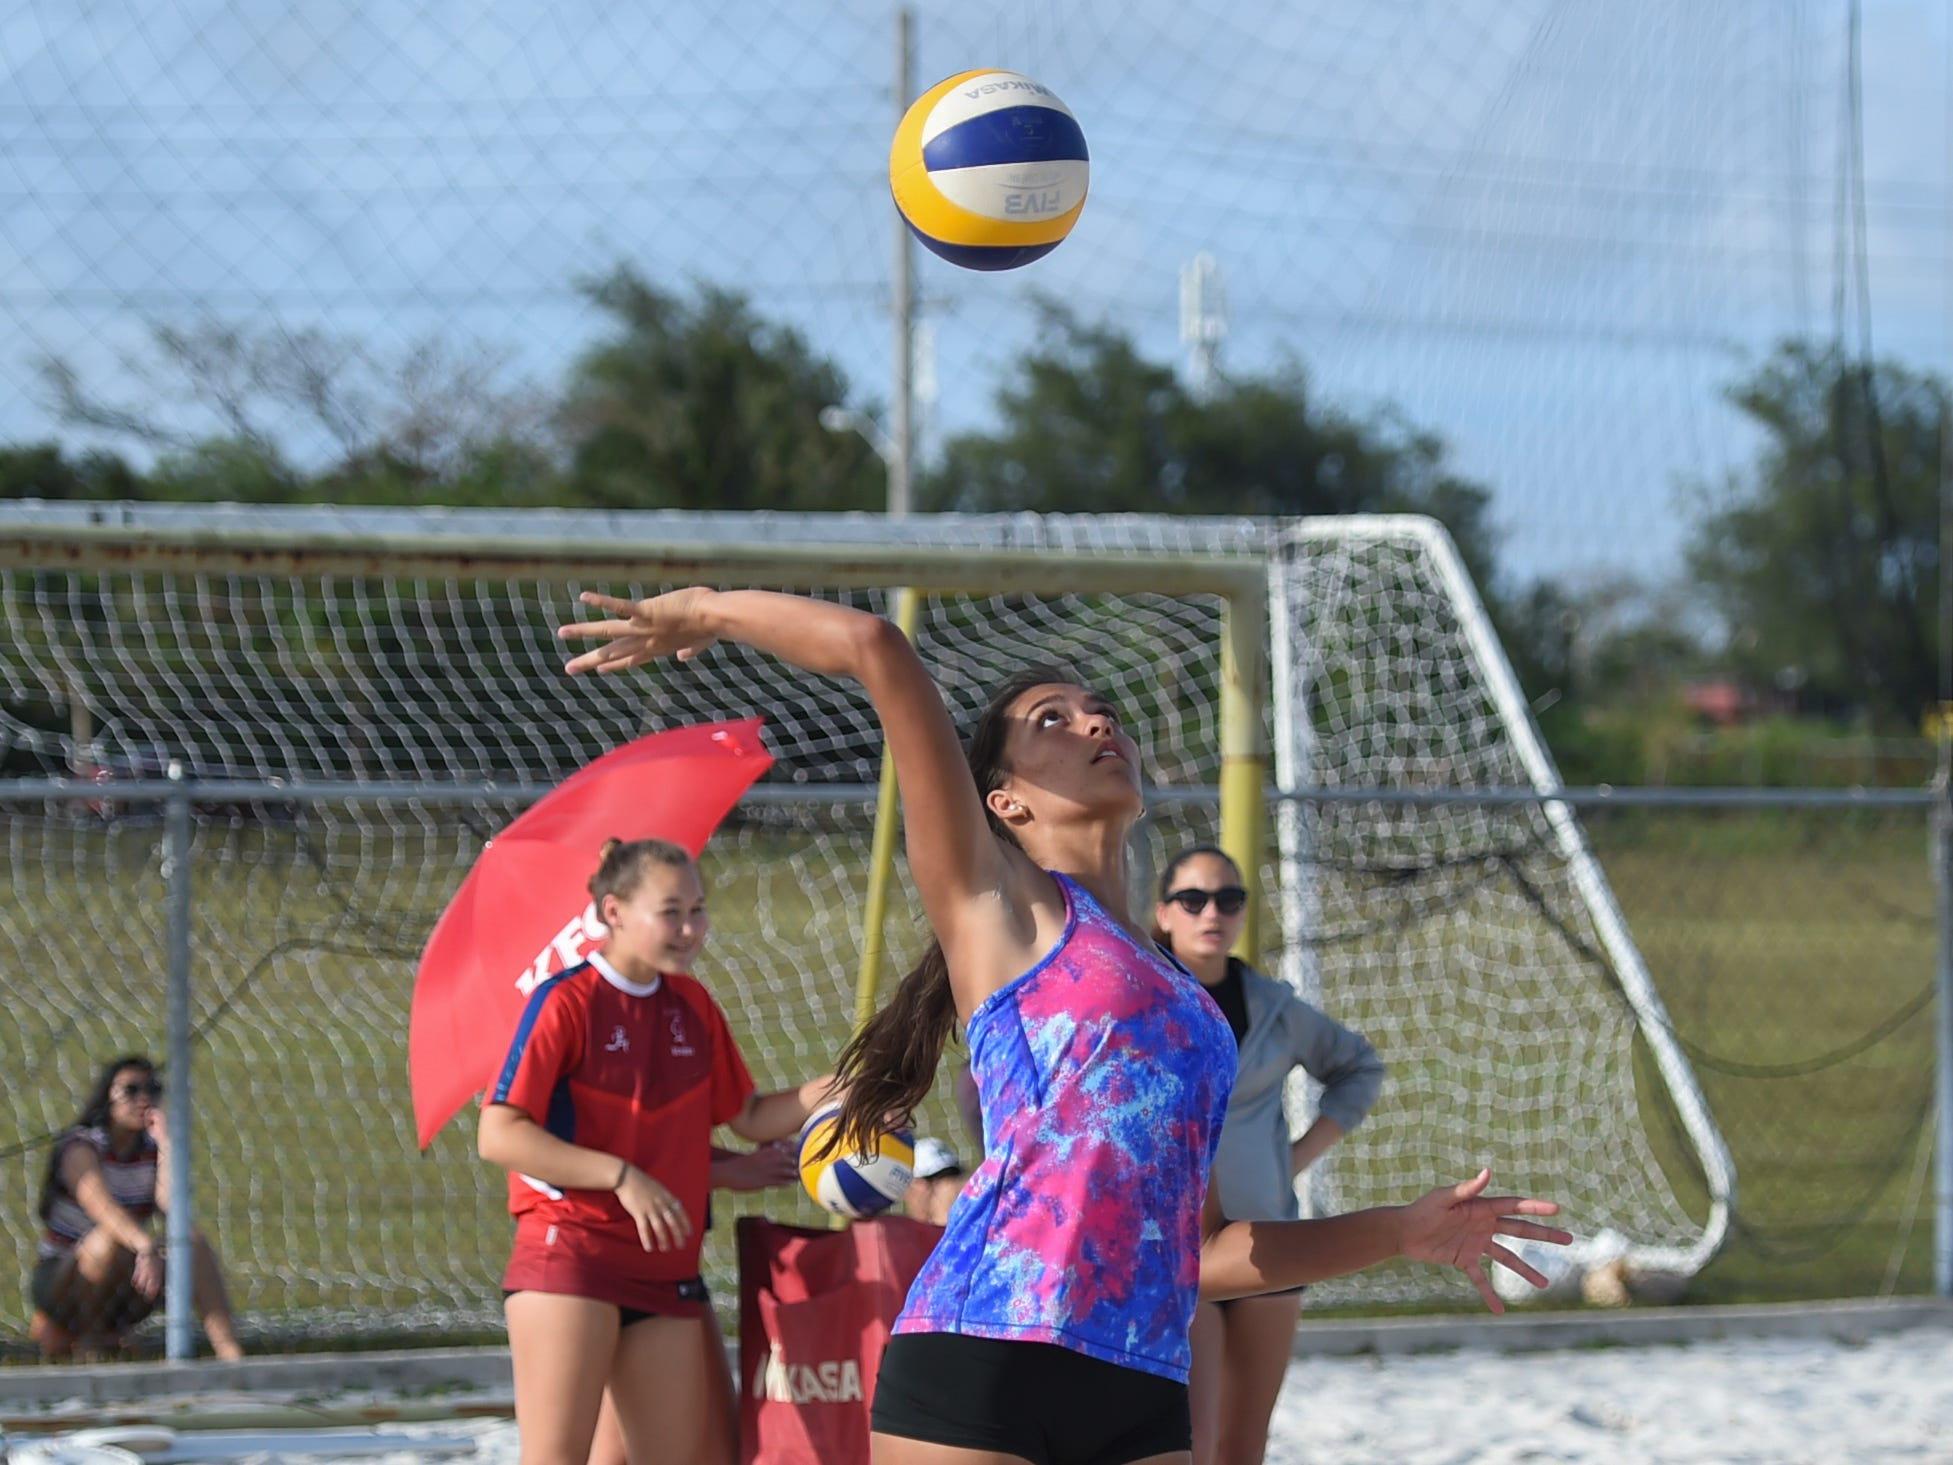 St. John's Knights White's Laressa Halladay serves during the IIAAG Beach Volleyball third place game at the Guam Football Association National Training Center in Dededo, March 12, 2019.